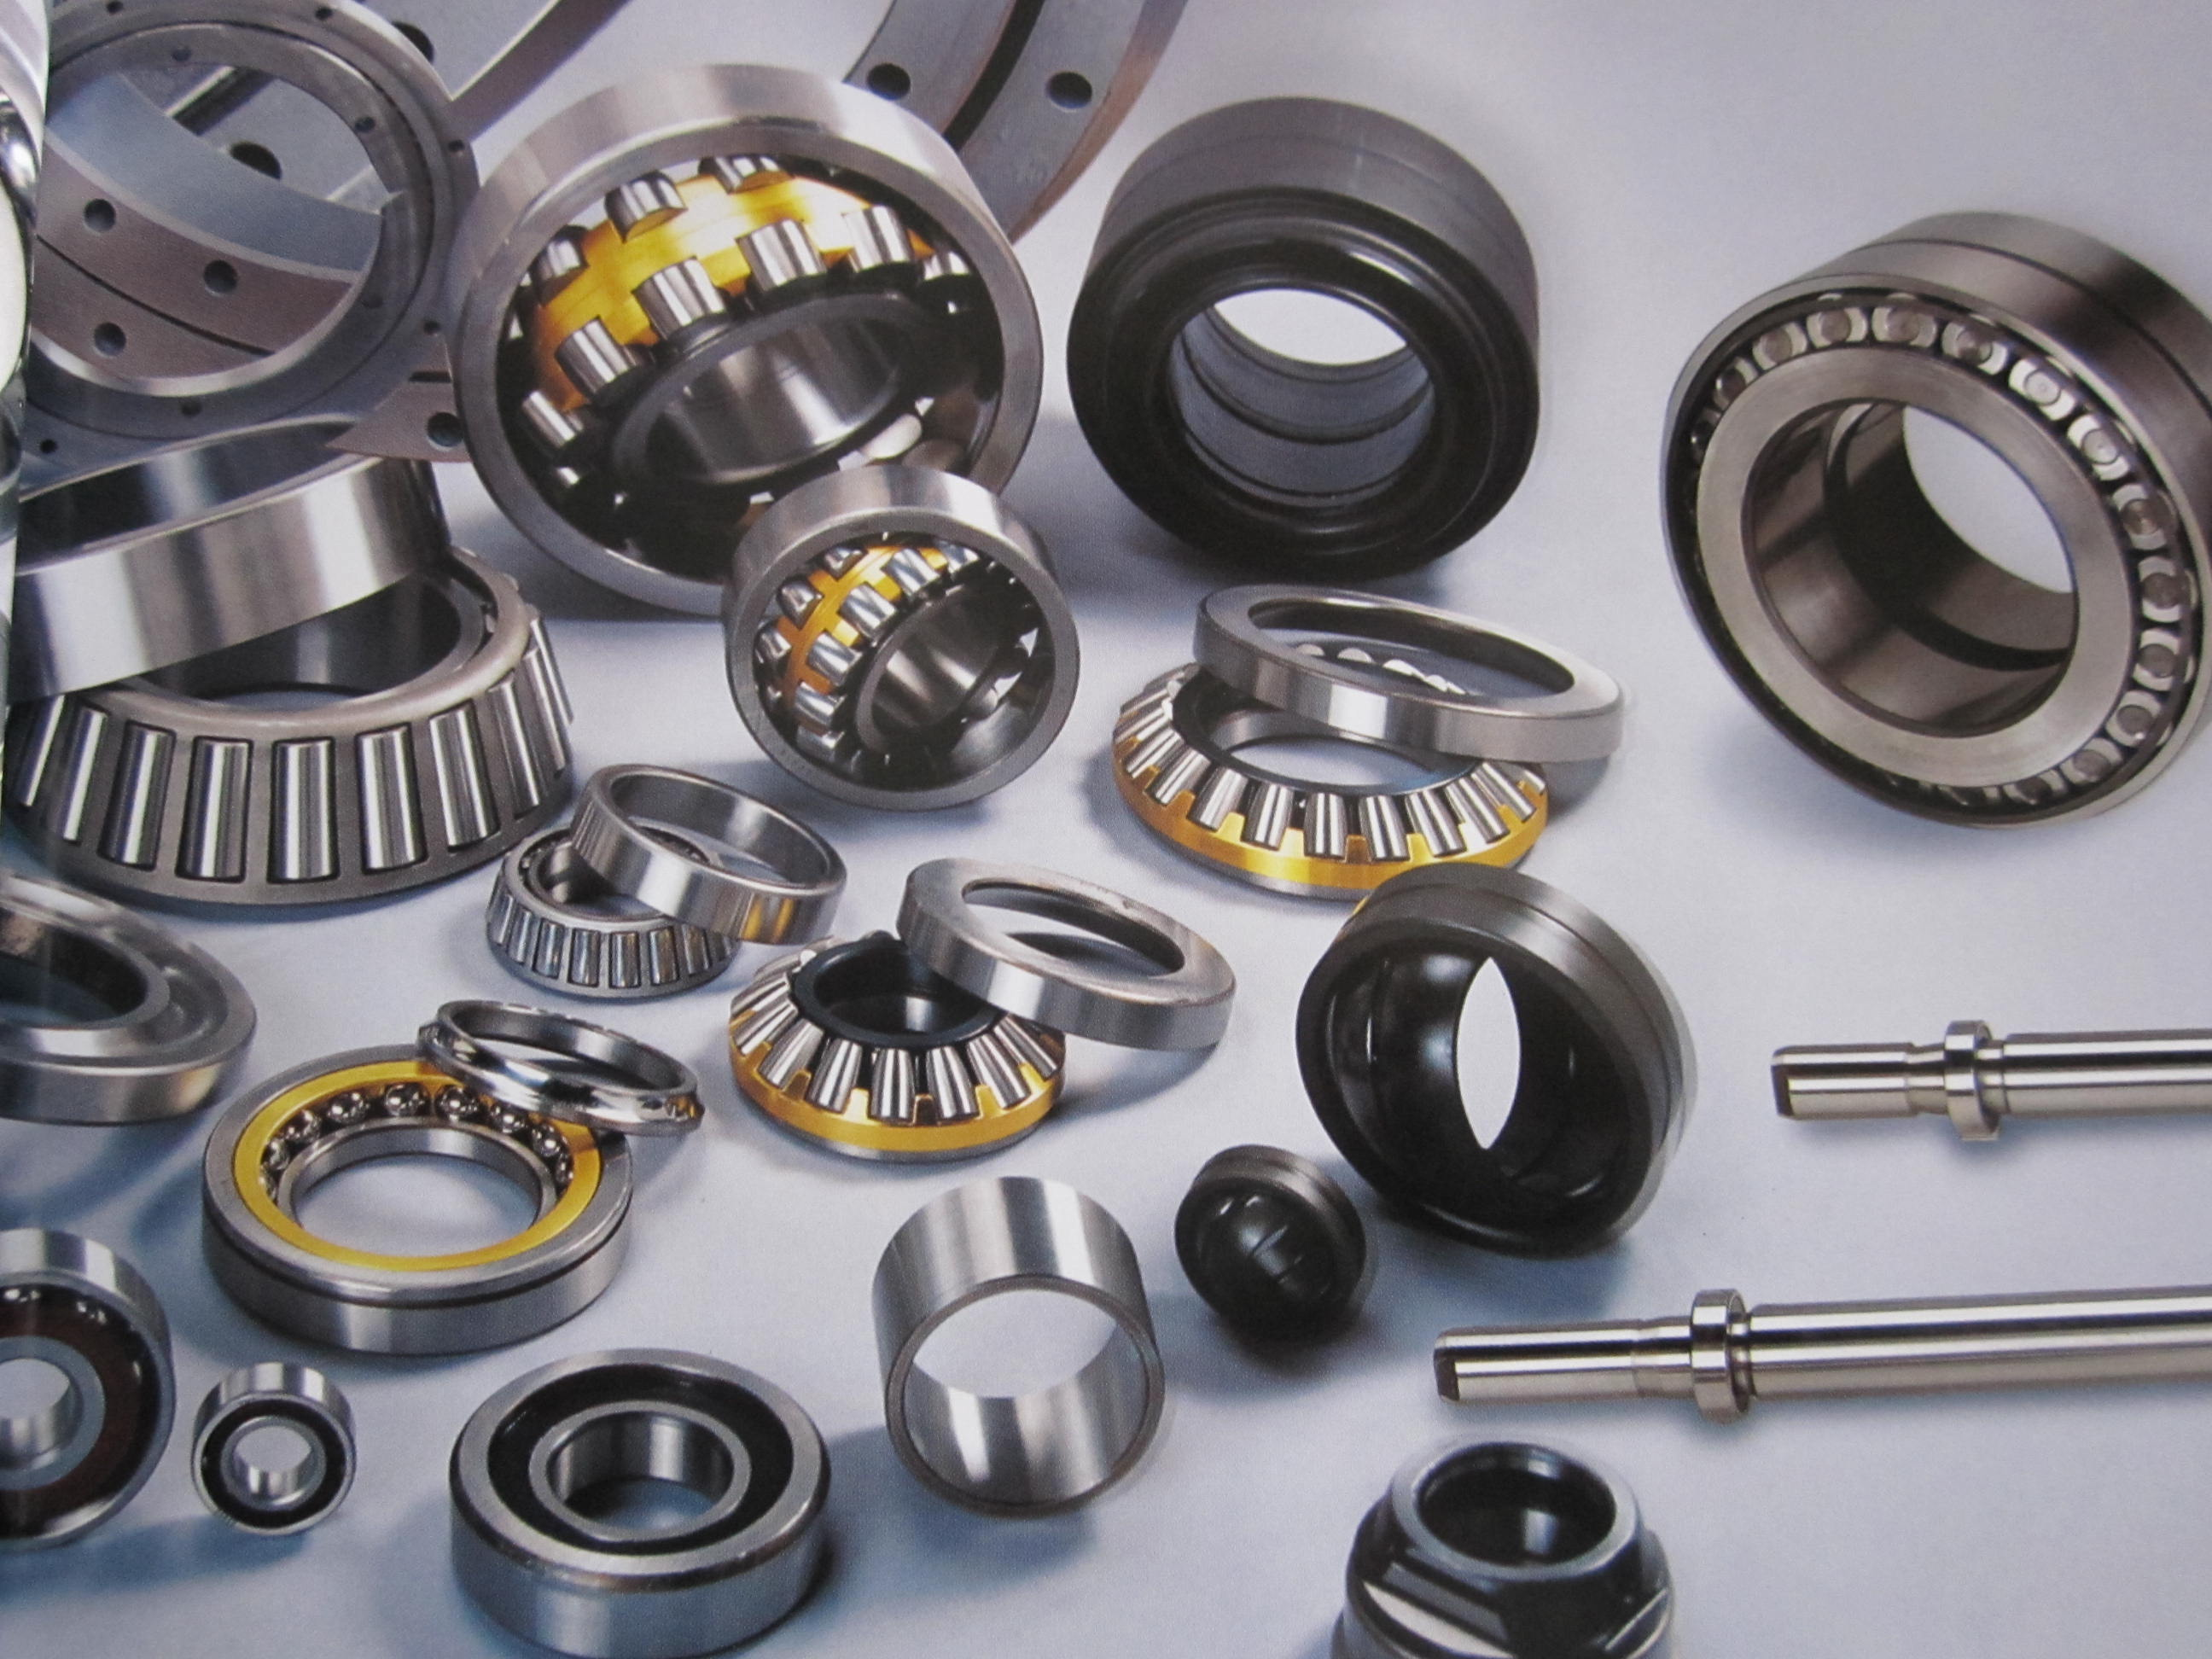 China pep industrial supply company skf ball bearings for Industrial distribution group